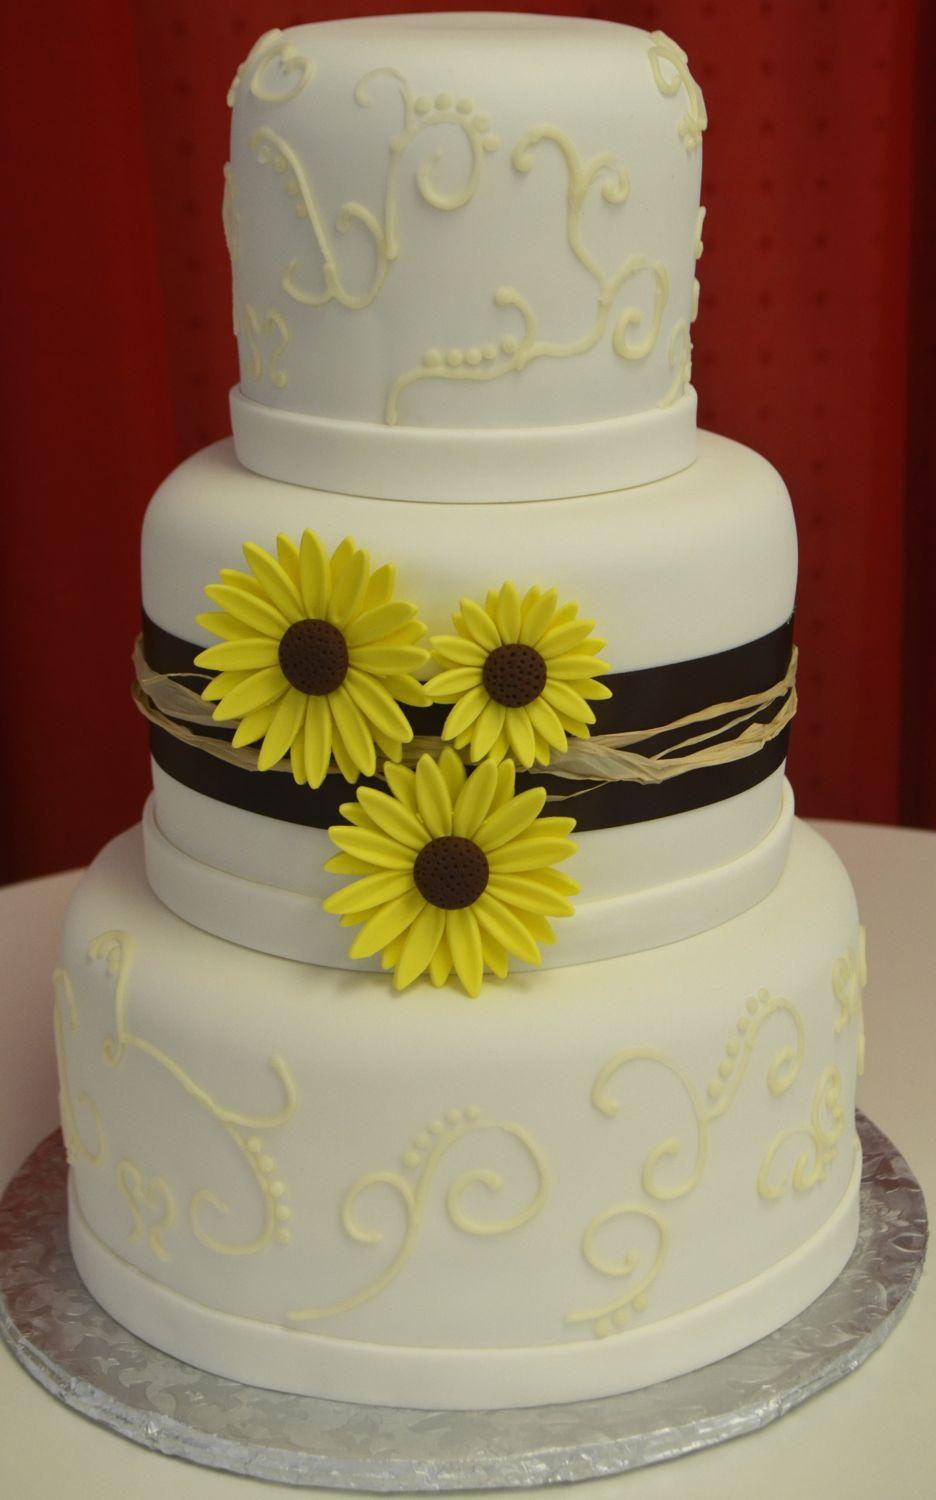 Wedding Cakes, Special Occasion Cakes, Sweet 16s, Cupcakes - ABC ...